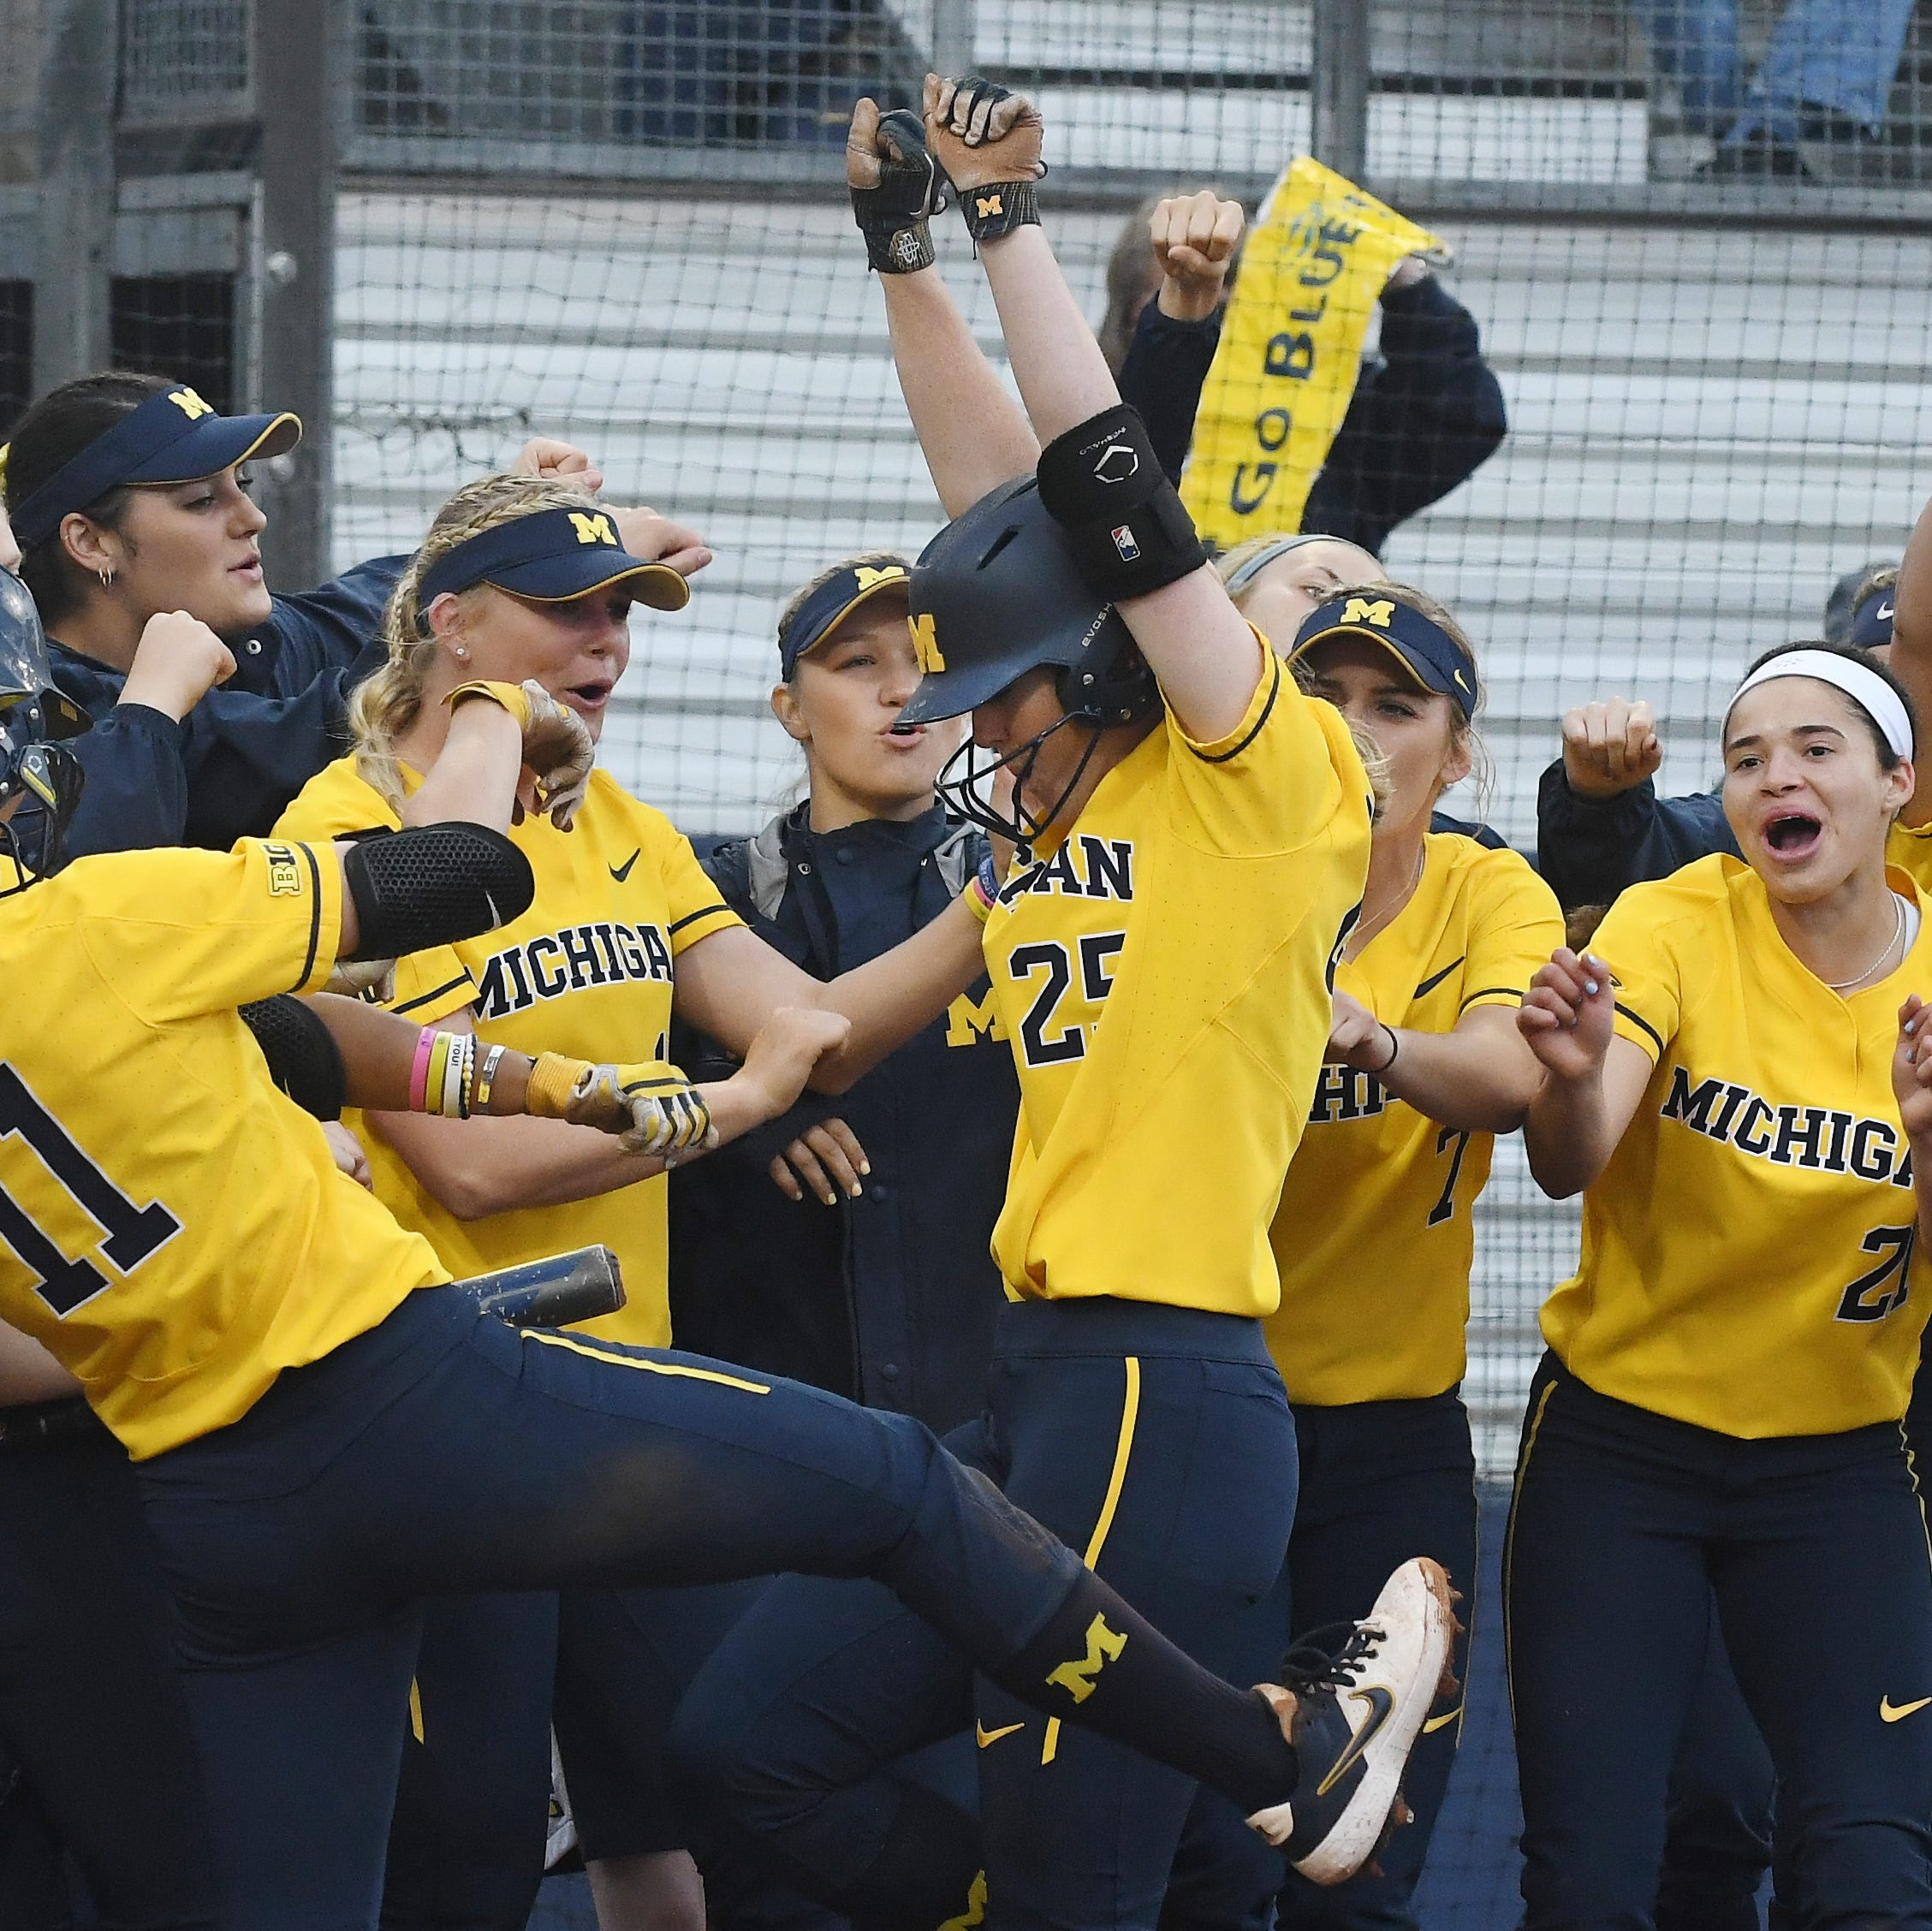 Michigan softball rolls in regional opener, 'great battle' awaits